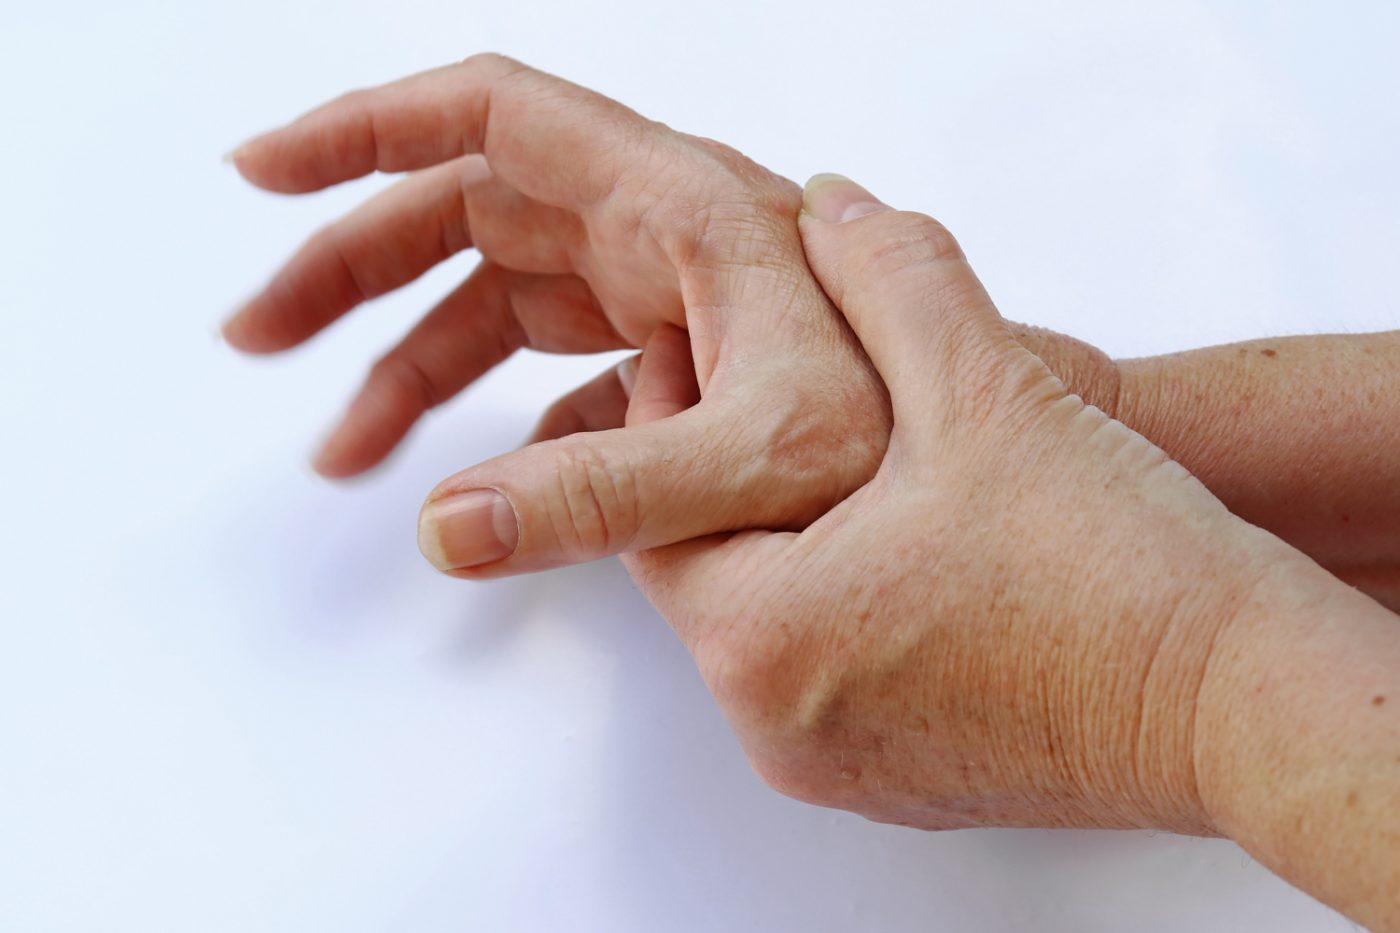 The hands of a woman with Parkinson's disease tremble very strongly